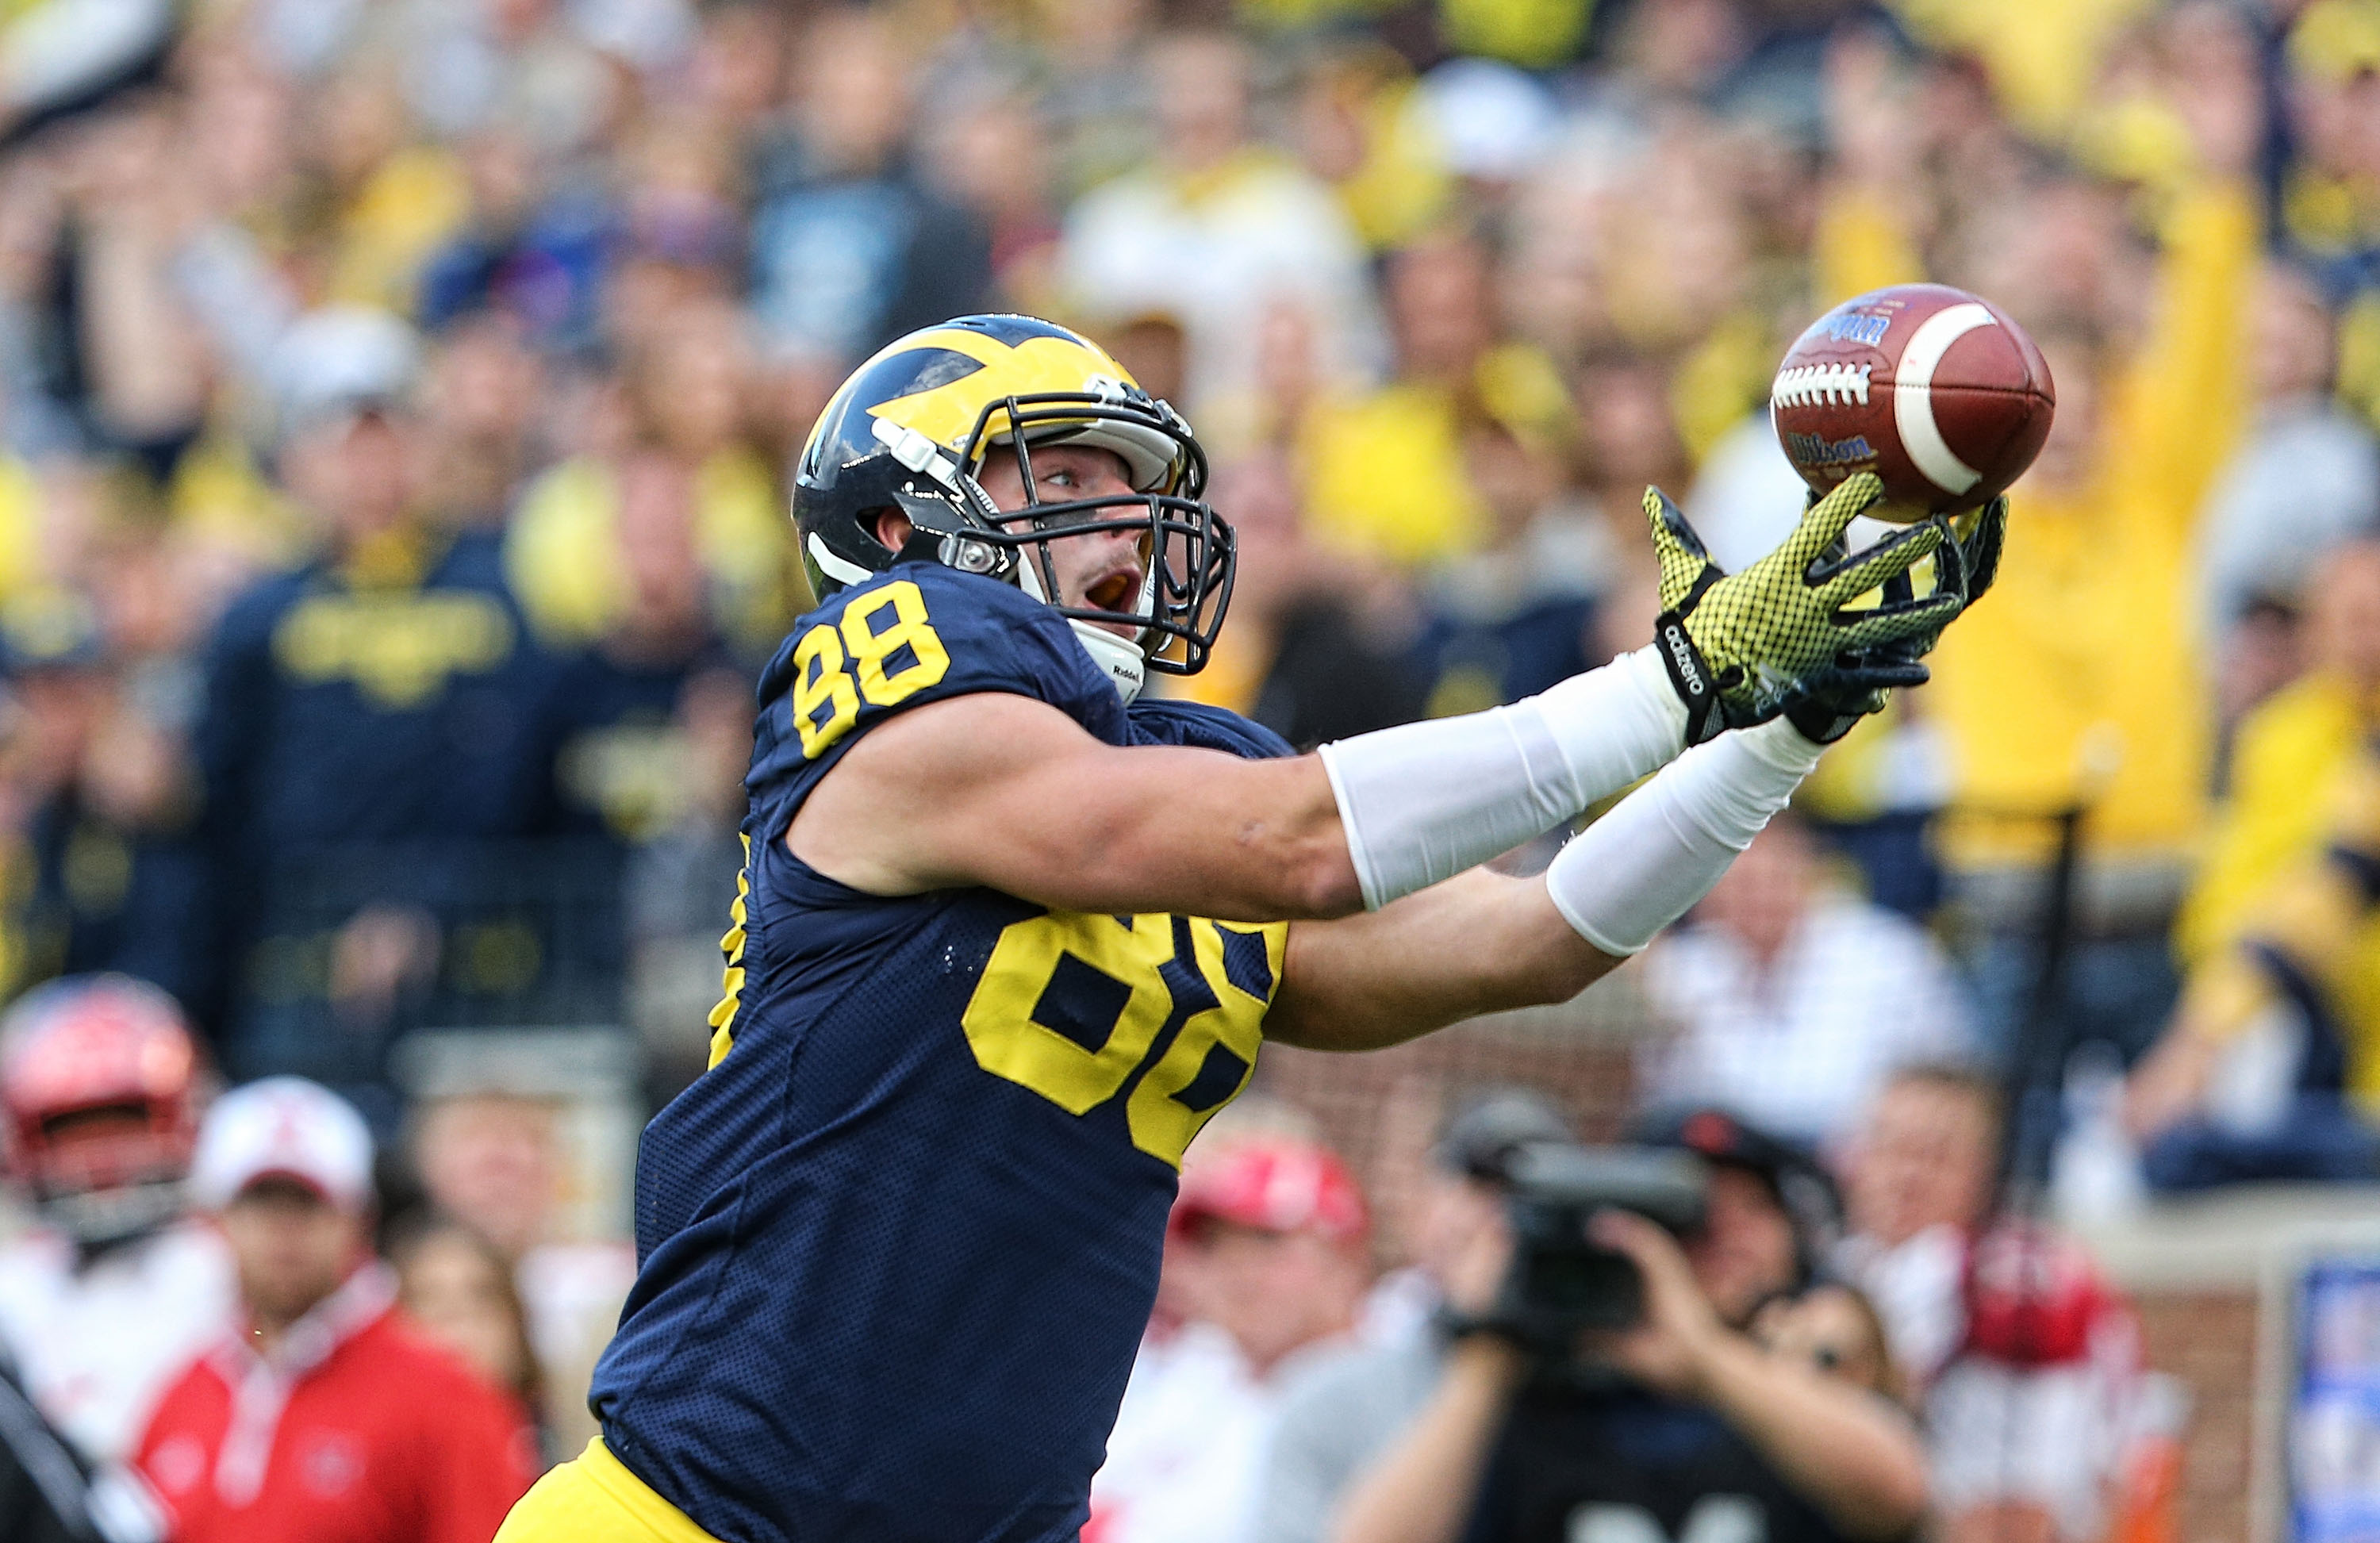 Michigan tight end Jake Butt would provide the Bills with a running mate to Charles Clay at the position. (Getty Images)